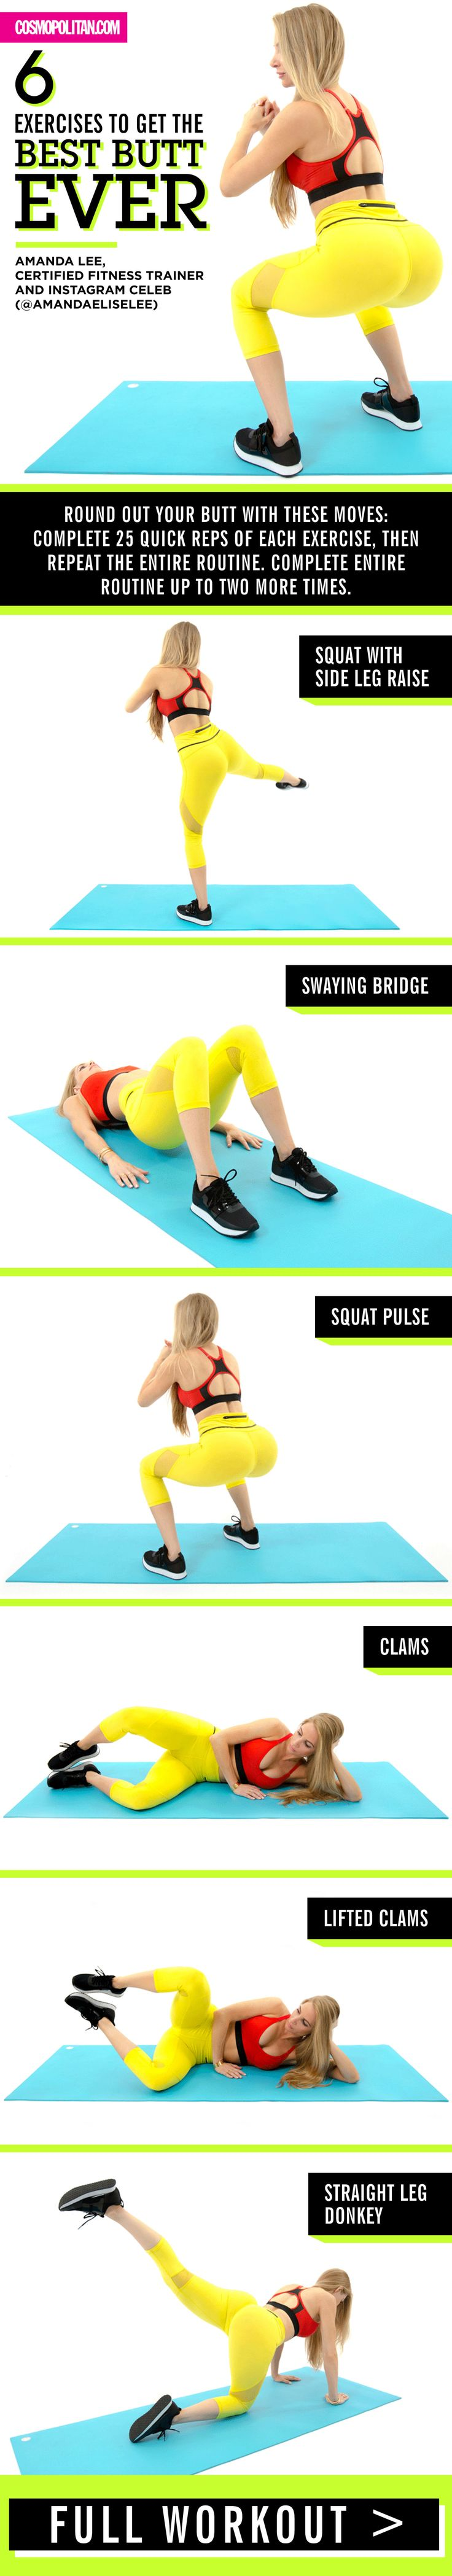 JensSetler Best Butt Workouts